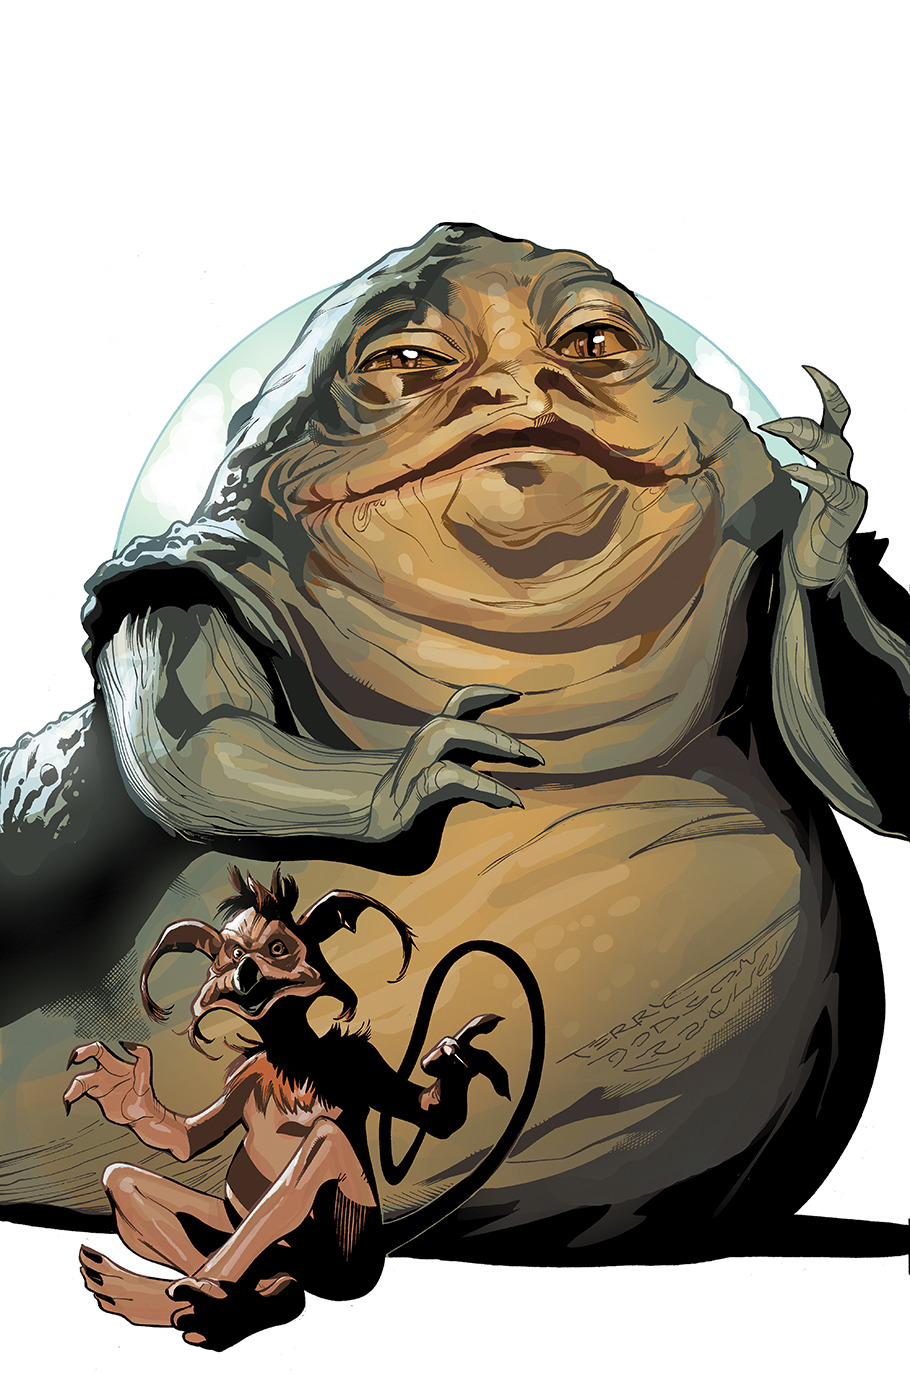 Star Wars Age Of Rebellion Comic Covers By Terry Dodson Star Wars Species Star Wars Images Star Wars Art